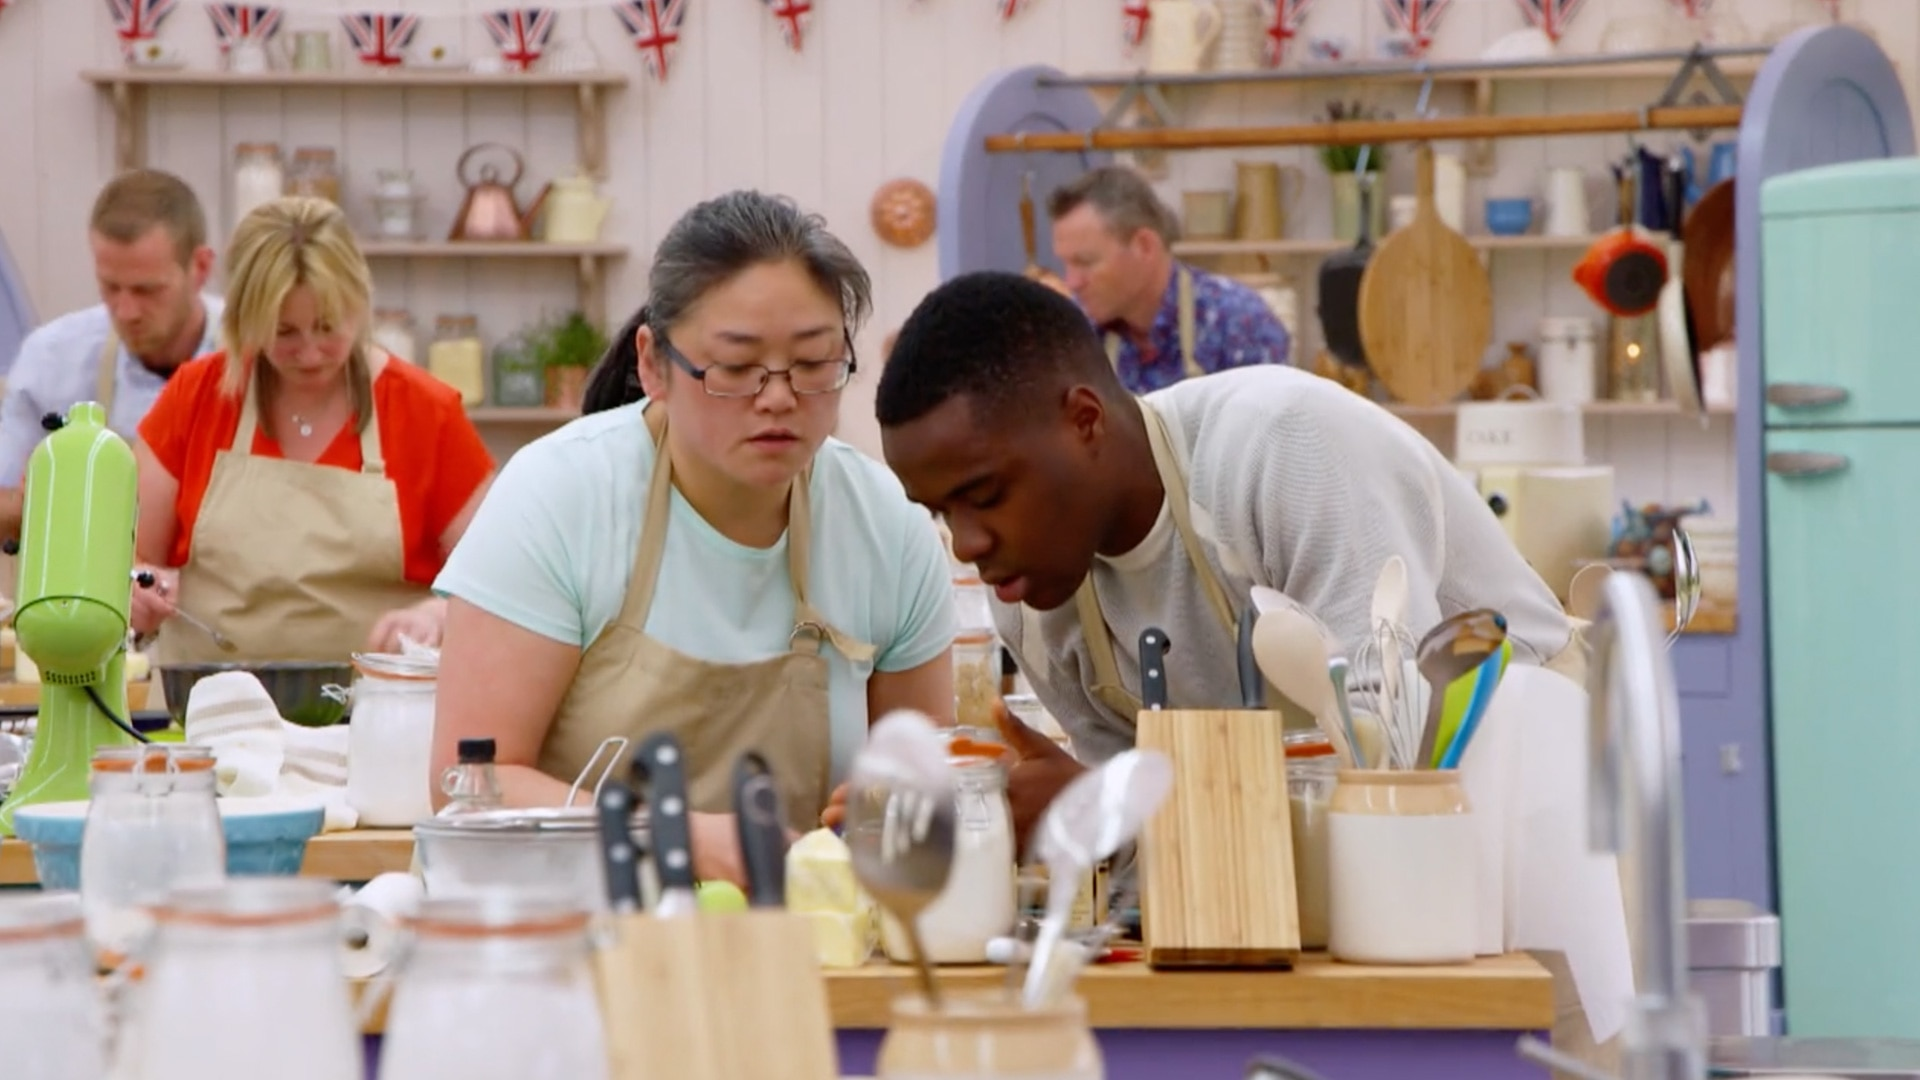 The Great British Bake Off All 4